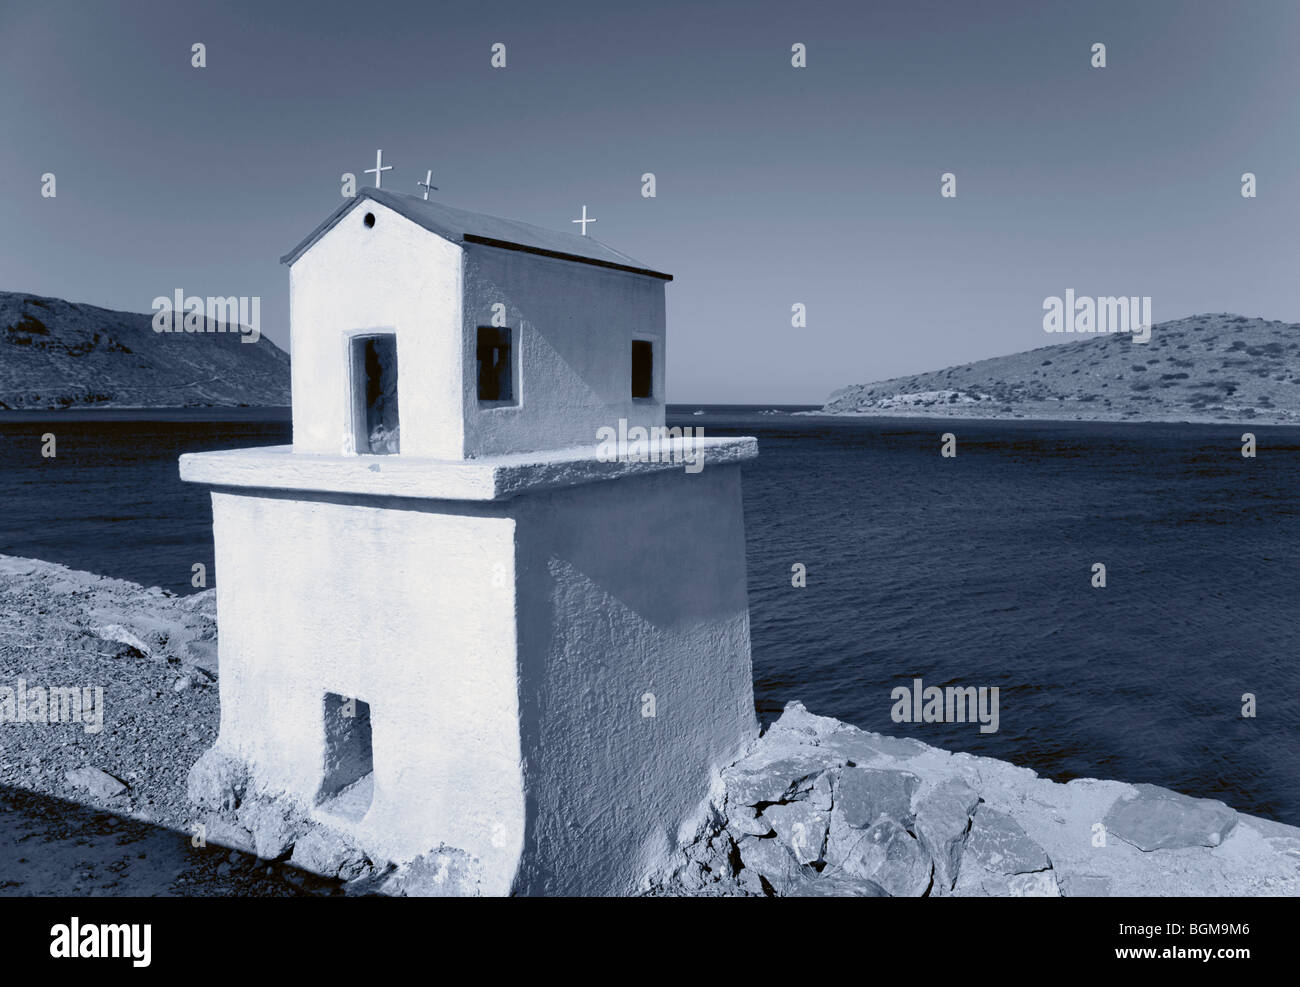 Memorial for deathly car accident on the island of Crete, Europe, blue filter Stock Photo